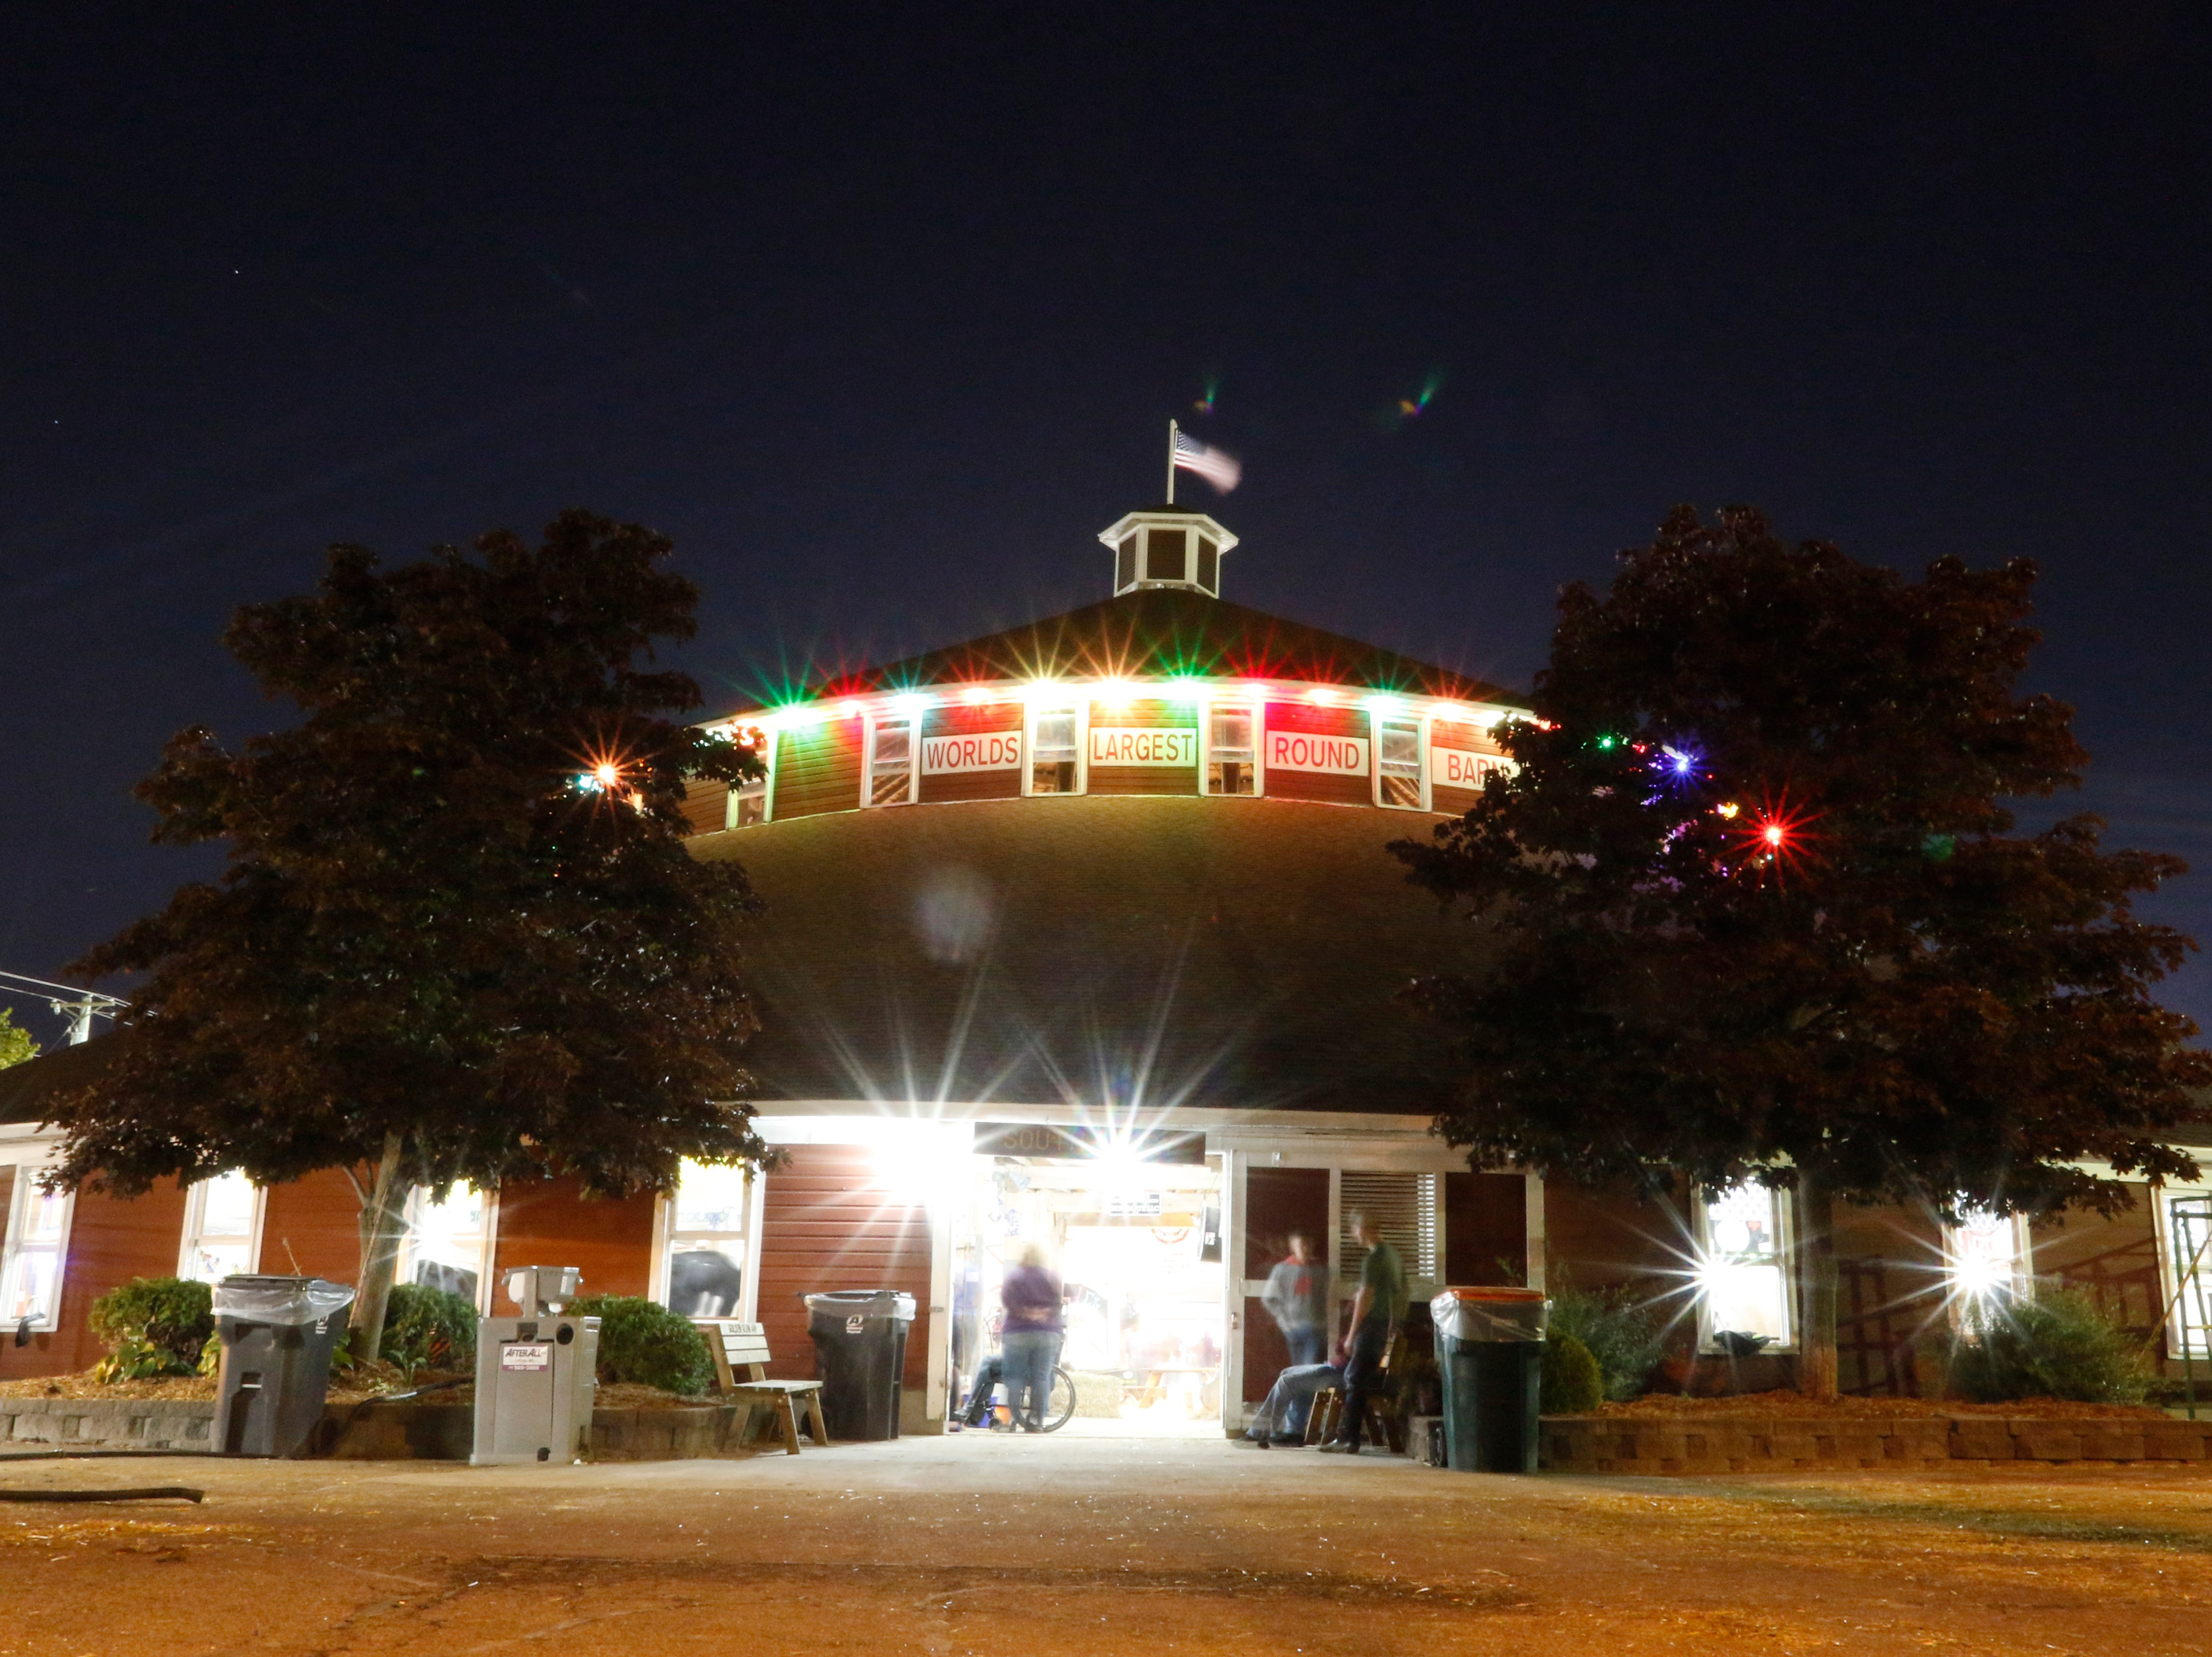 The world's largest round barn is lit with colorful lights during the Central Wisconsin State Fair in Marshfield Wednesday, August 22, 2018.